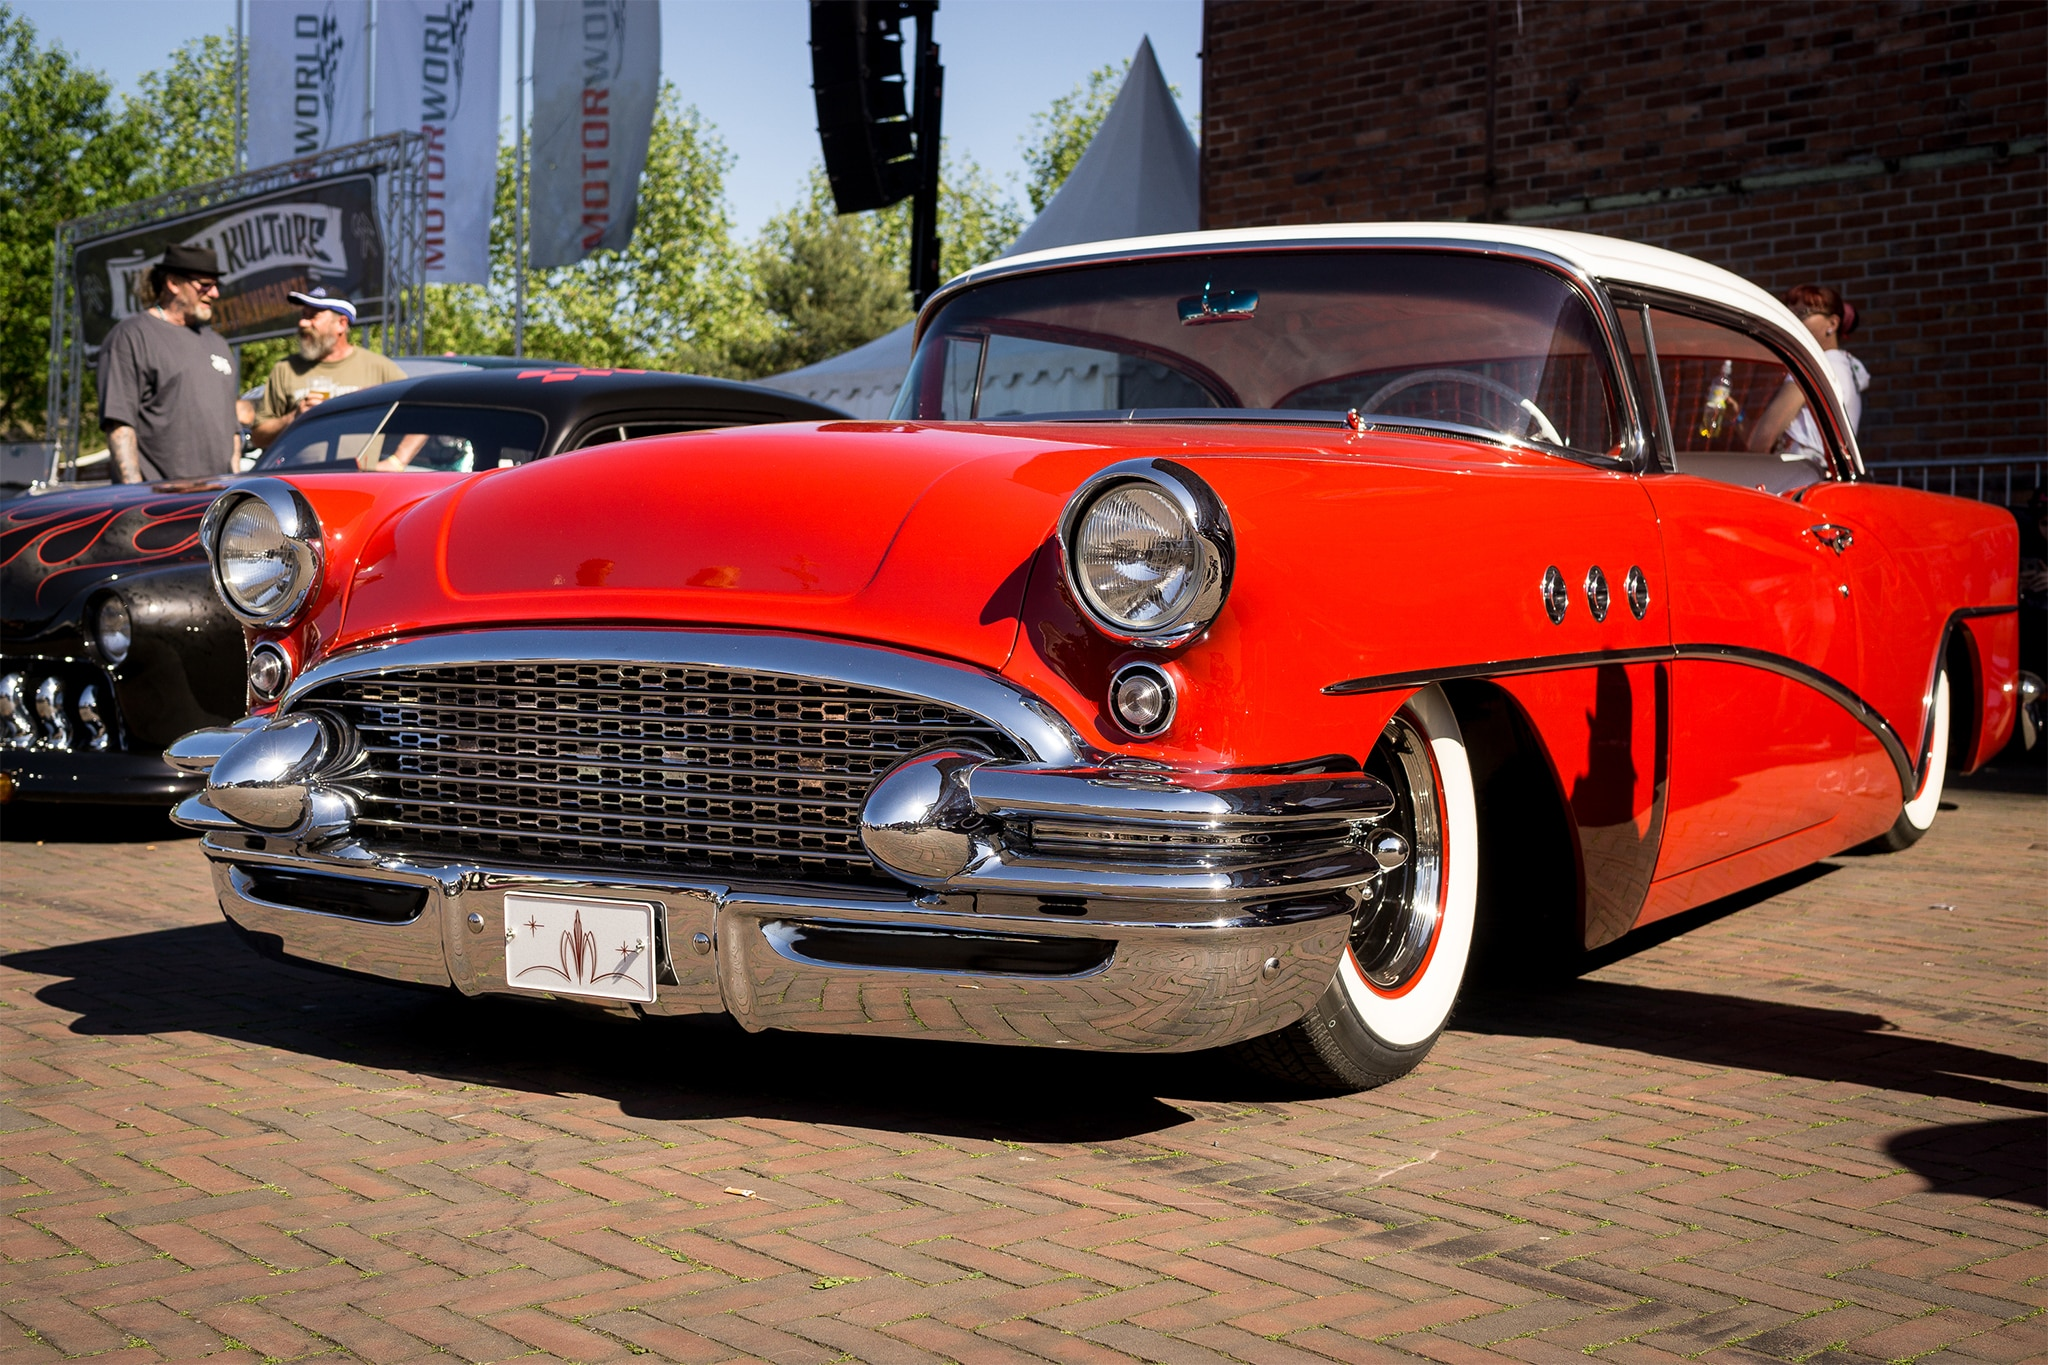 2017 Kustom Kulture Forever: Old School American Steel in ...